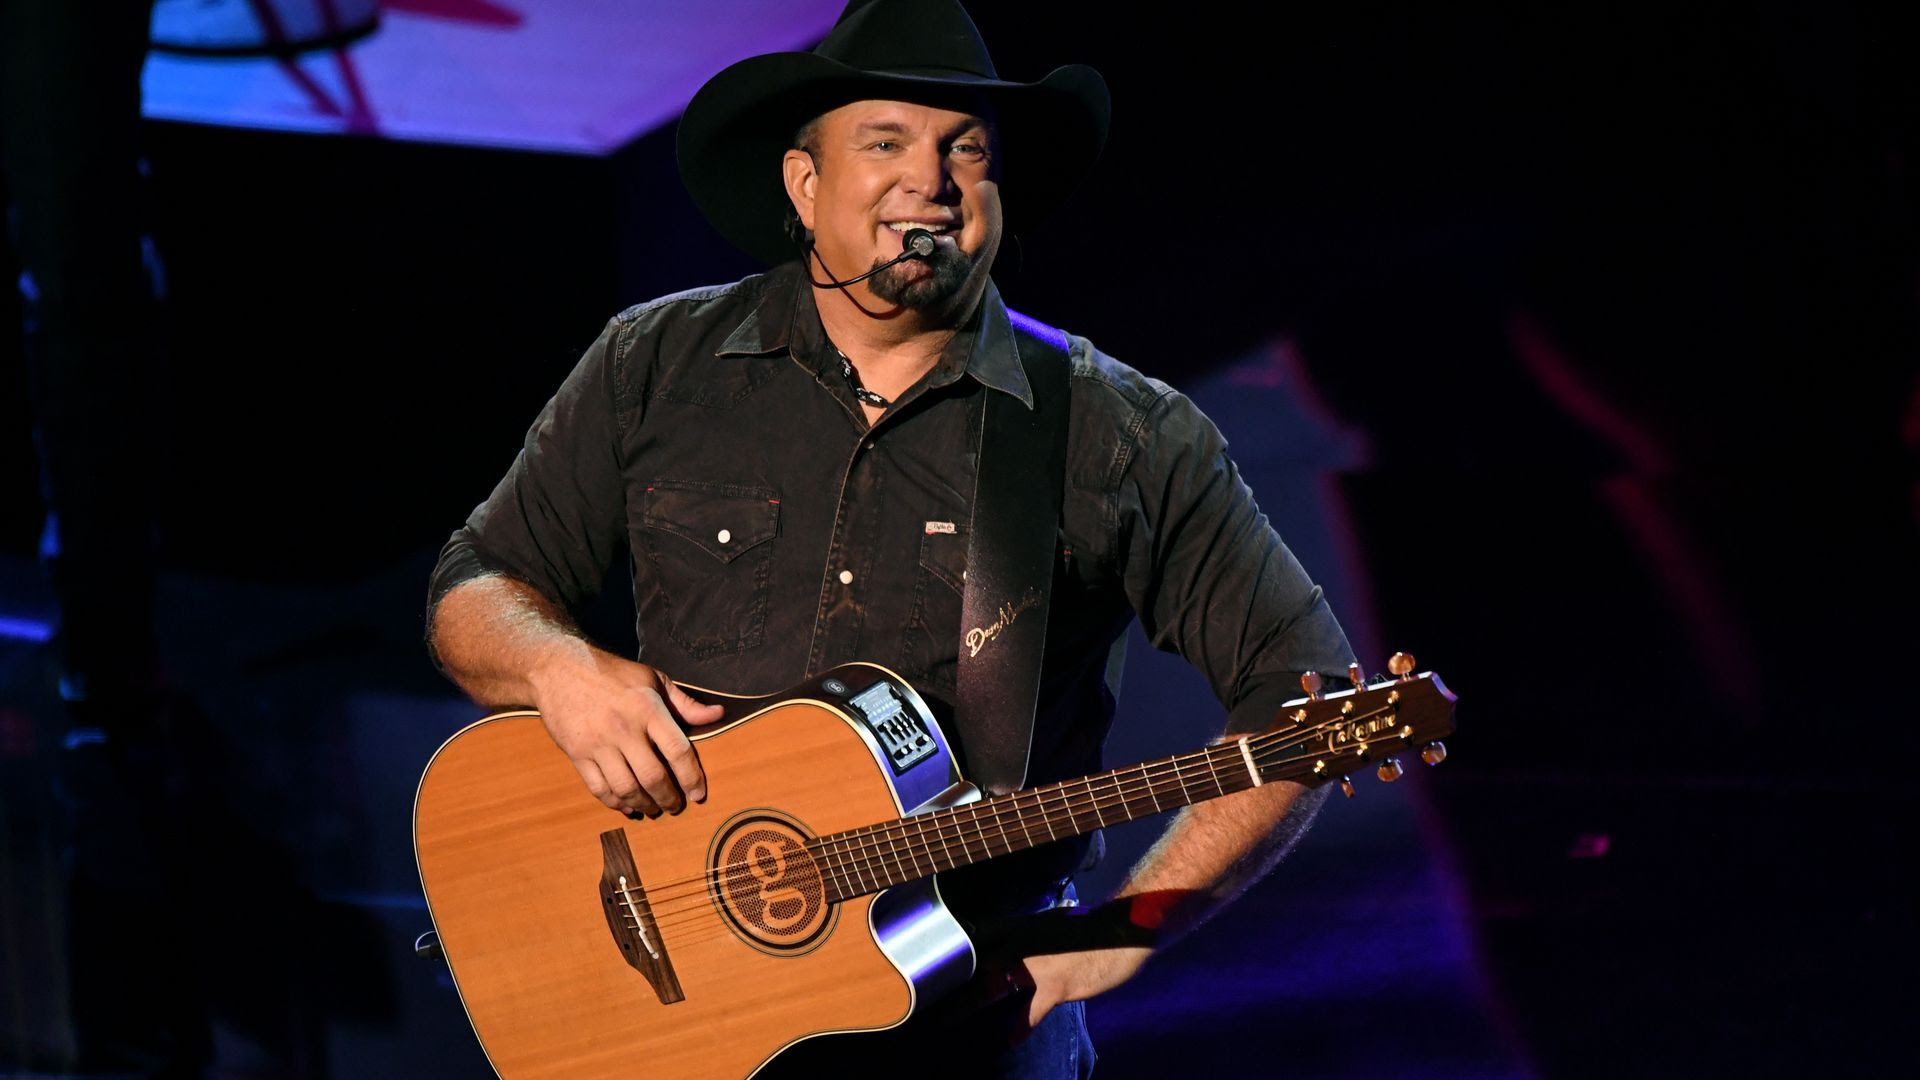 Garth Brooks holding a guitar and laughing with the audience.